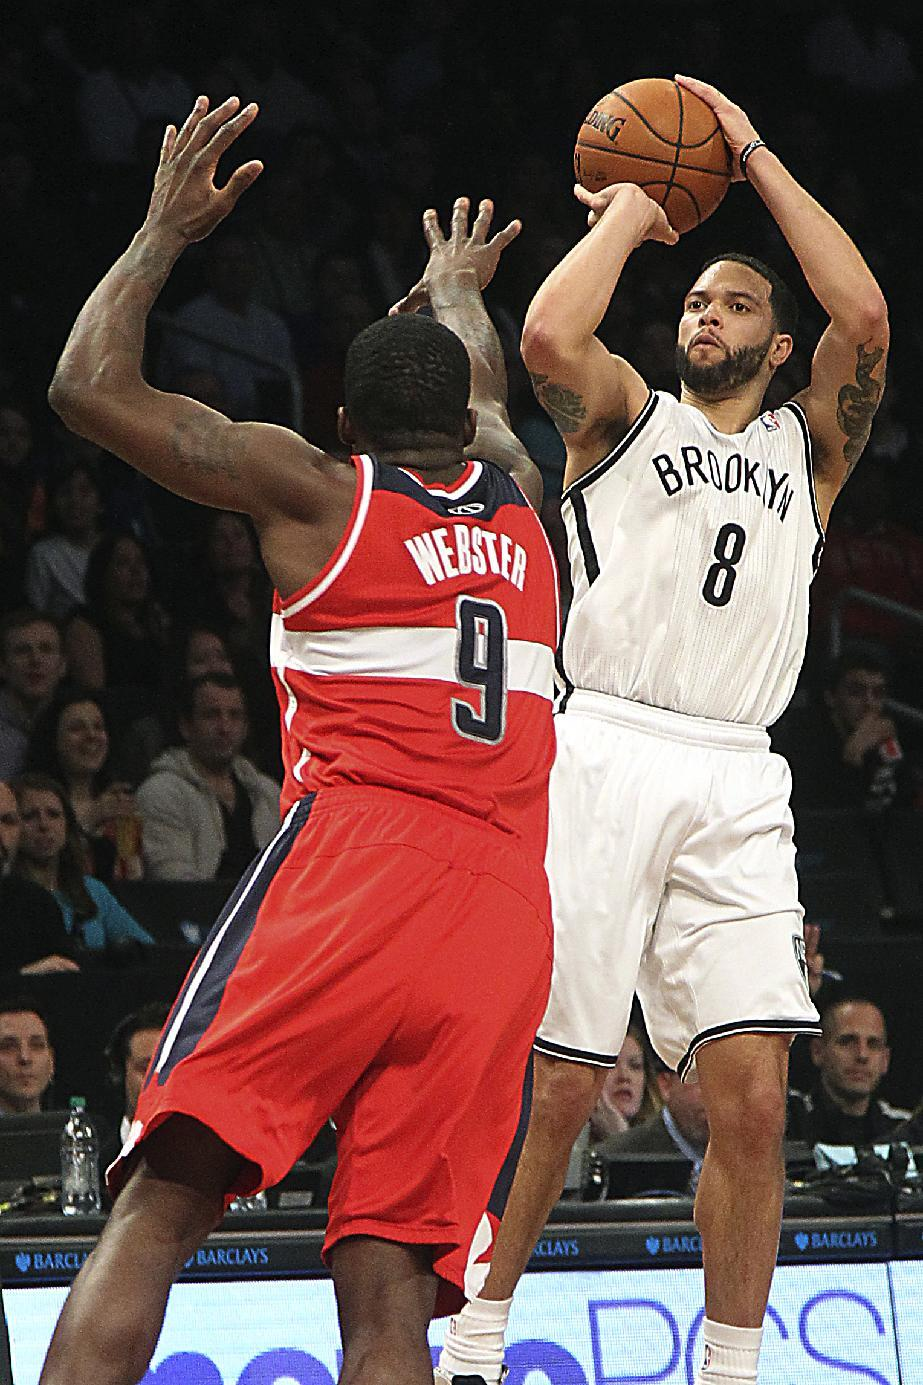 Brooklyn Nets' Deron Williams (8) shoots a 3-pointer past Washington Wizards' Martell Webster during the first half of NBA basketball game, Friday, March 8, 2013, in New York. Williams set the NBA record with nine 3-pointers in a half during the first half of their game. (AP Photo/Mary Altaffer)